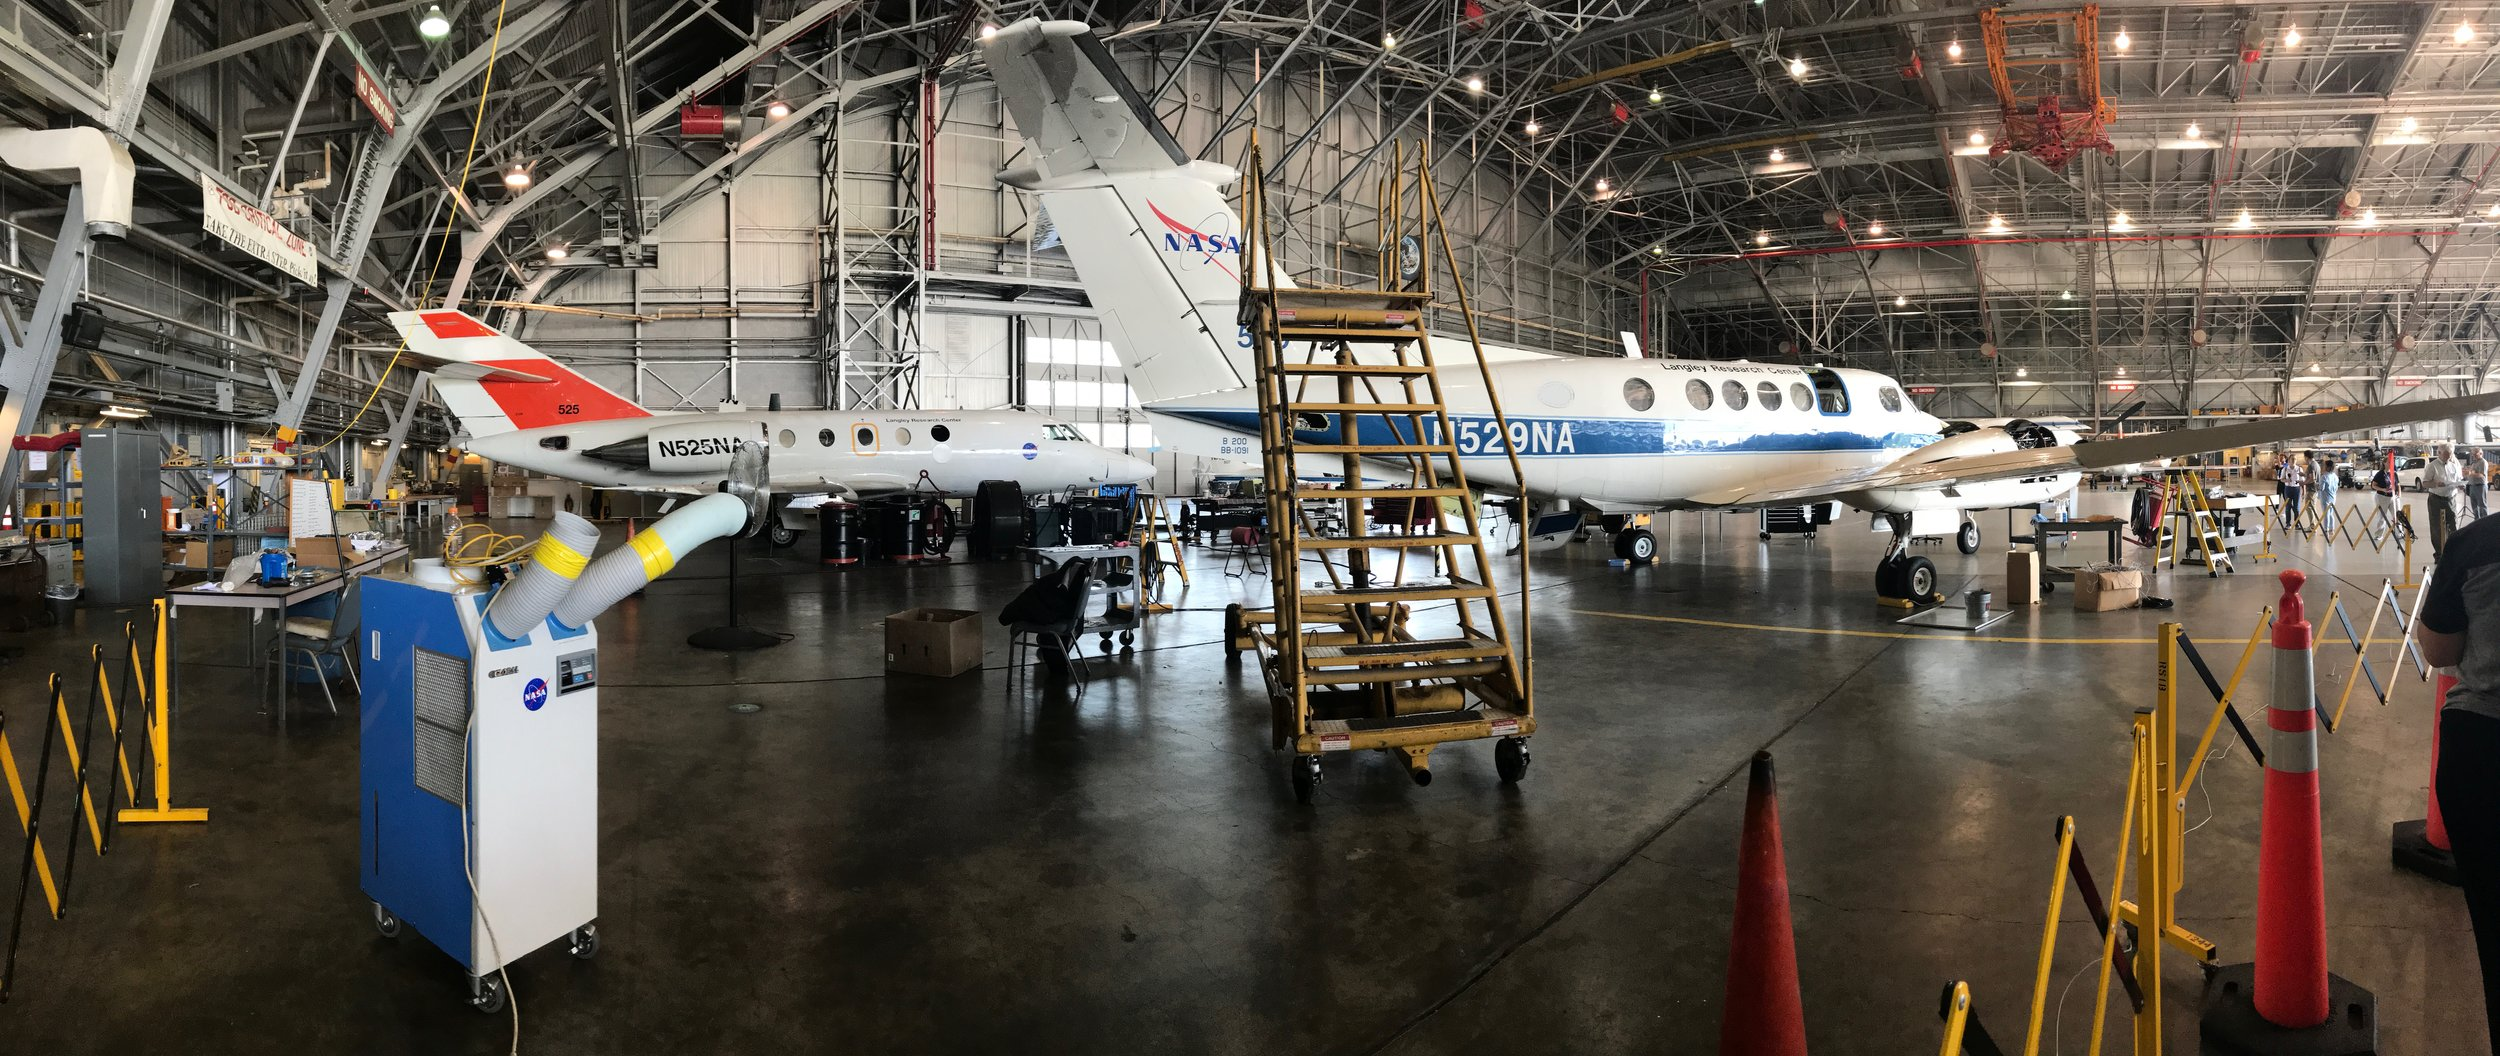 NASA aircraft used for earth science research. Credit: Paige Jarreau.